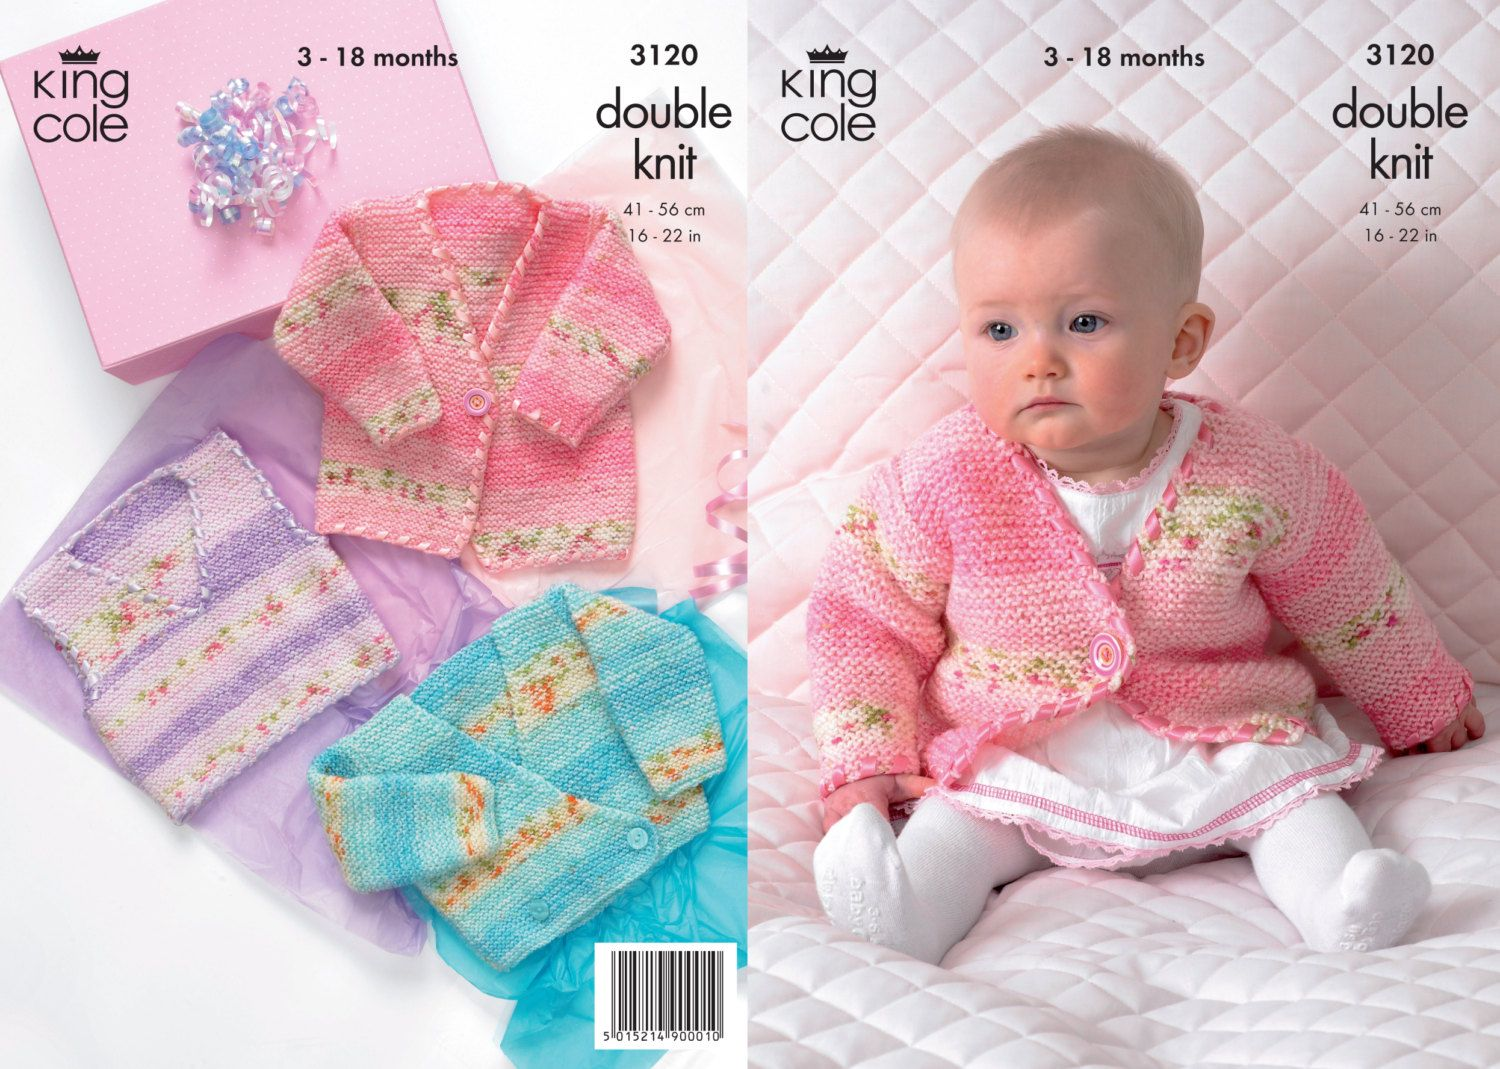 King cole double knit baby knitting pattern 3120 cardigantank king cole double knit baby knitting pattern 3120 cardigantank tops 3 18 months bankloansurffo Choice Image